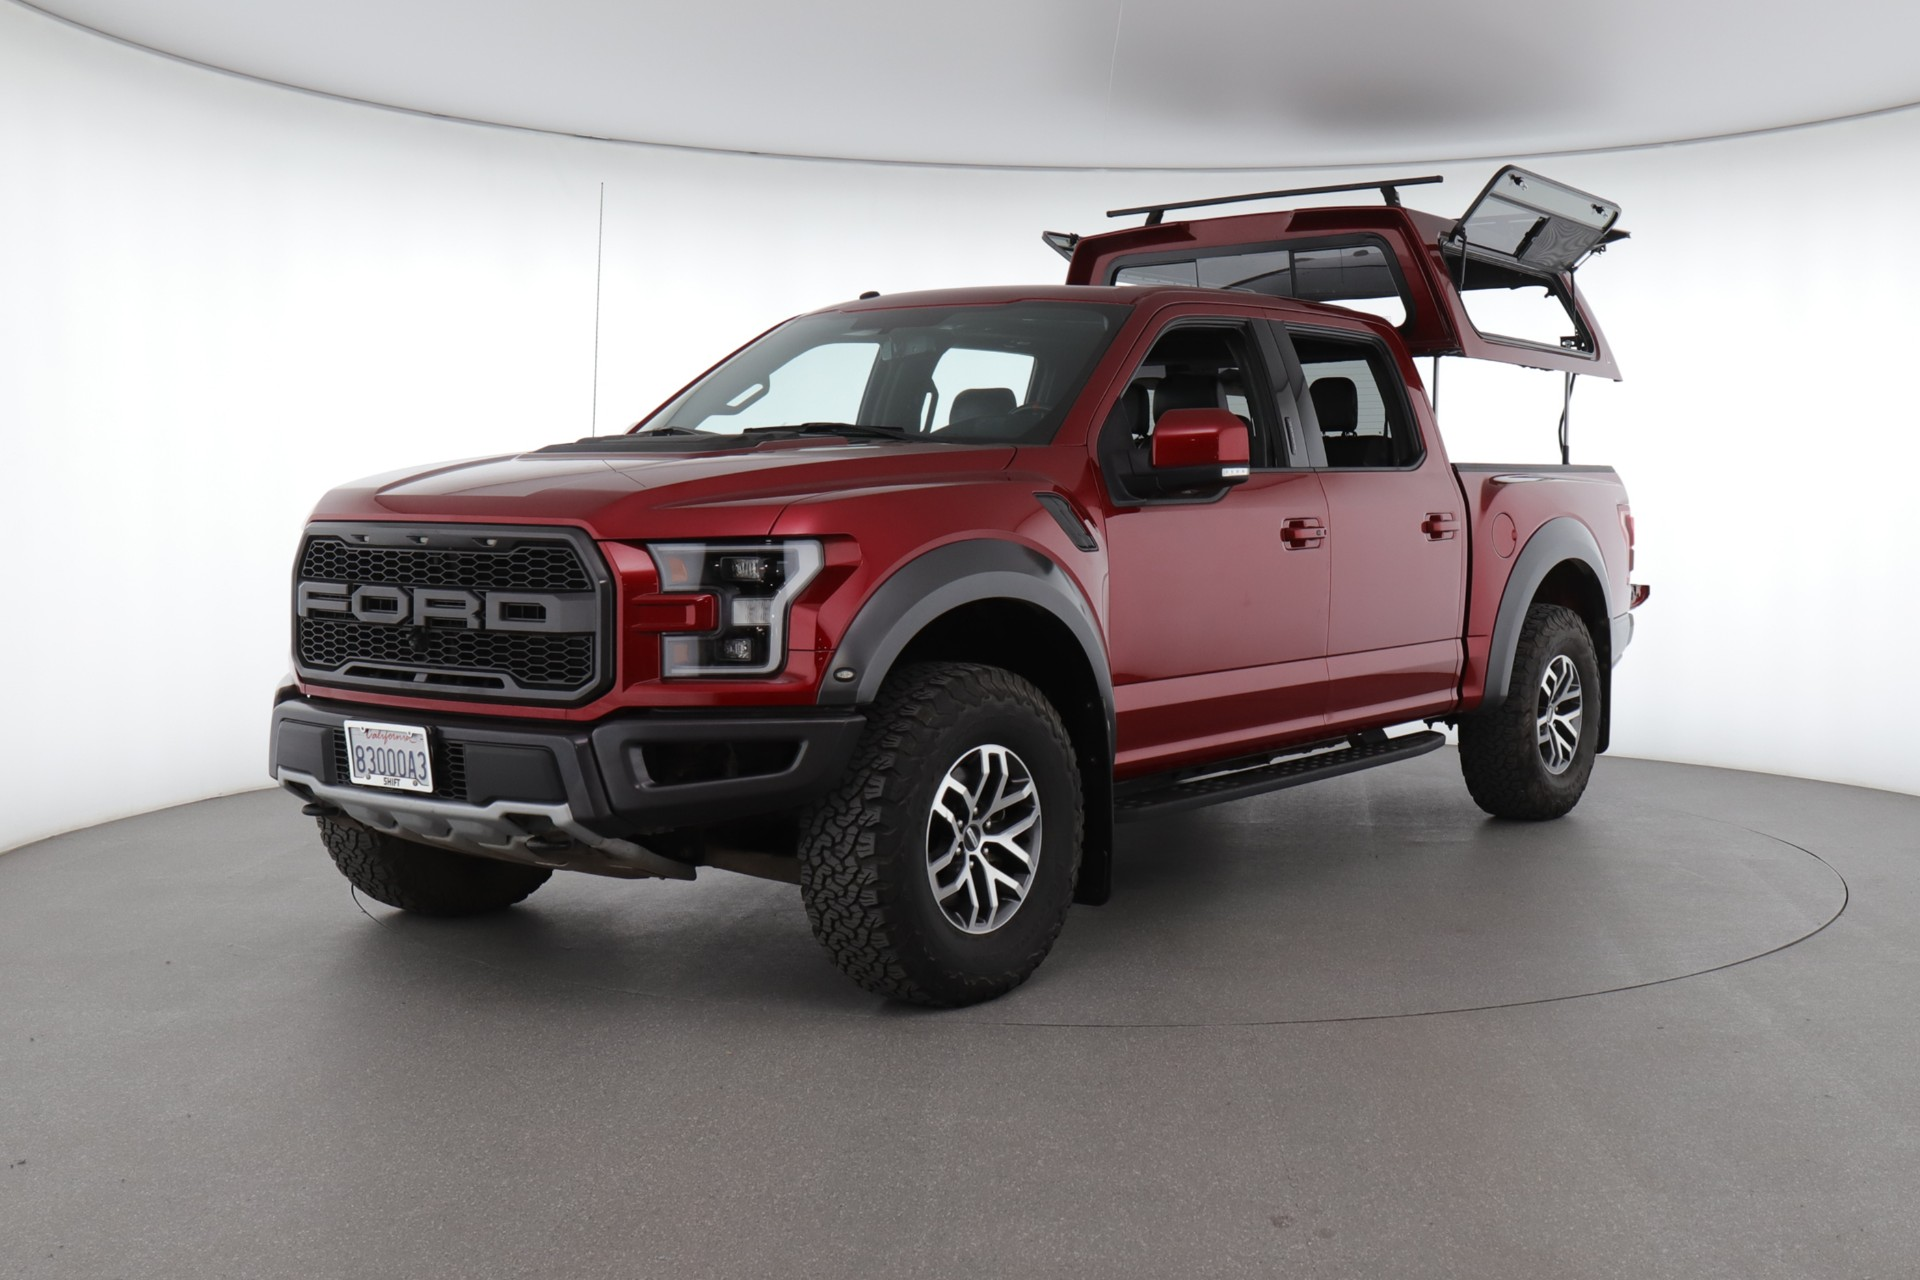 2017 Ford F-150 Raptor (from $64,550)